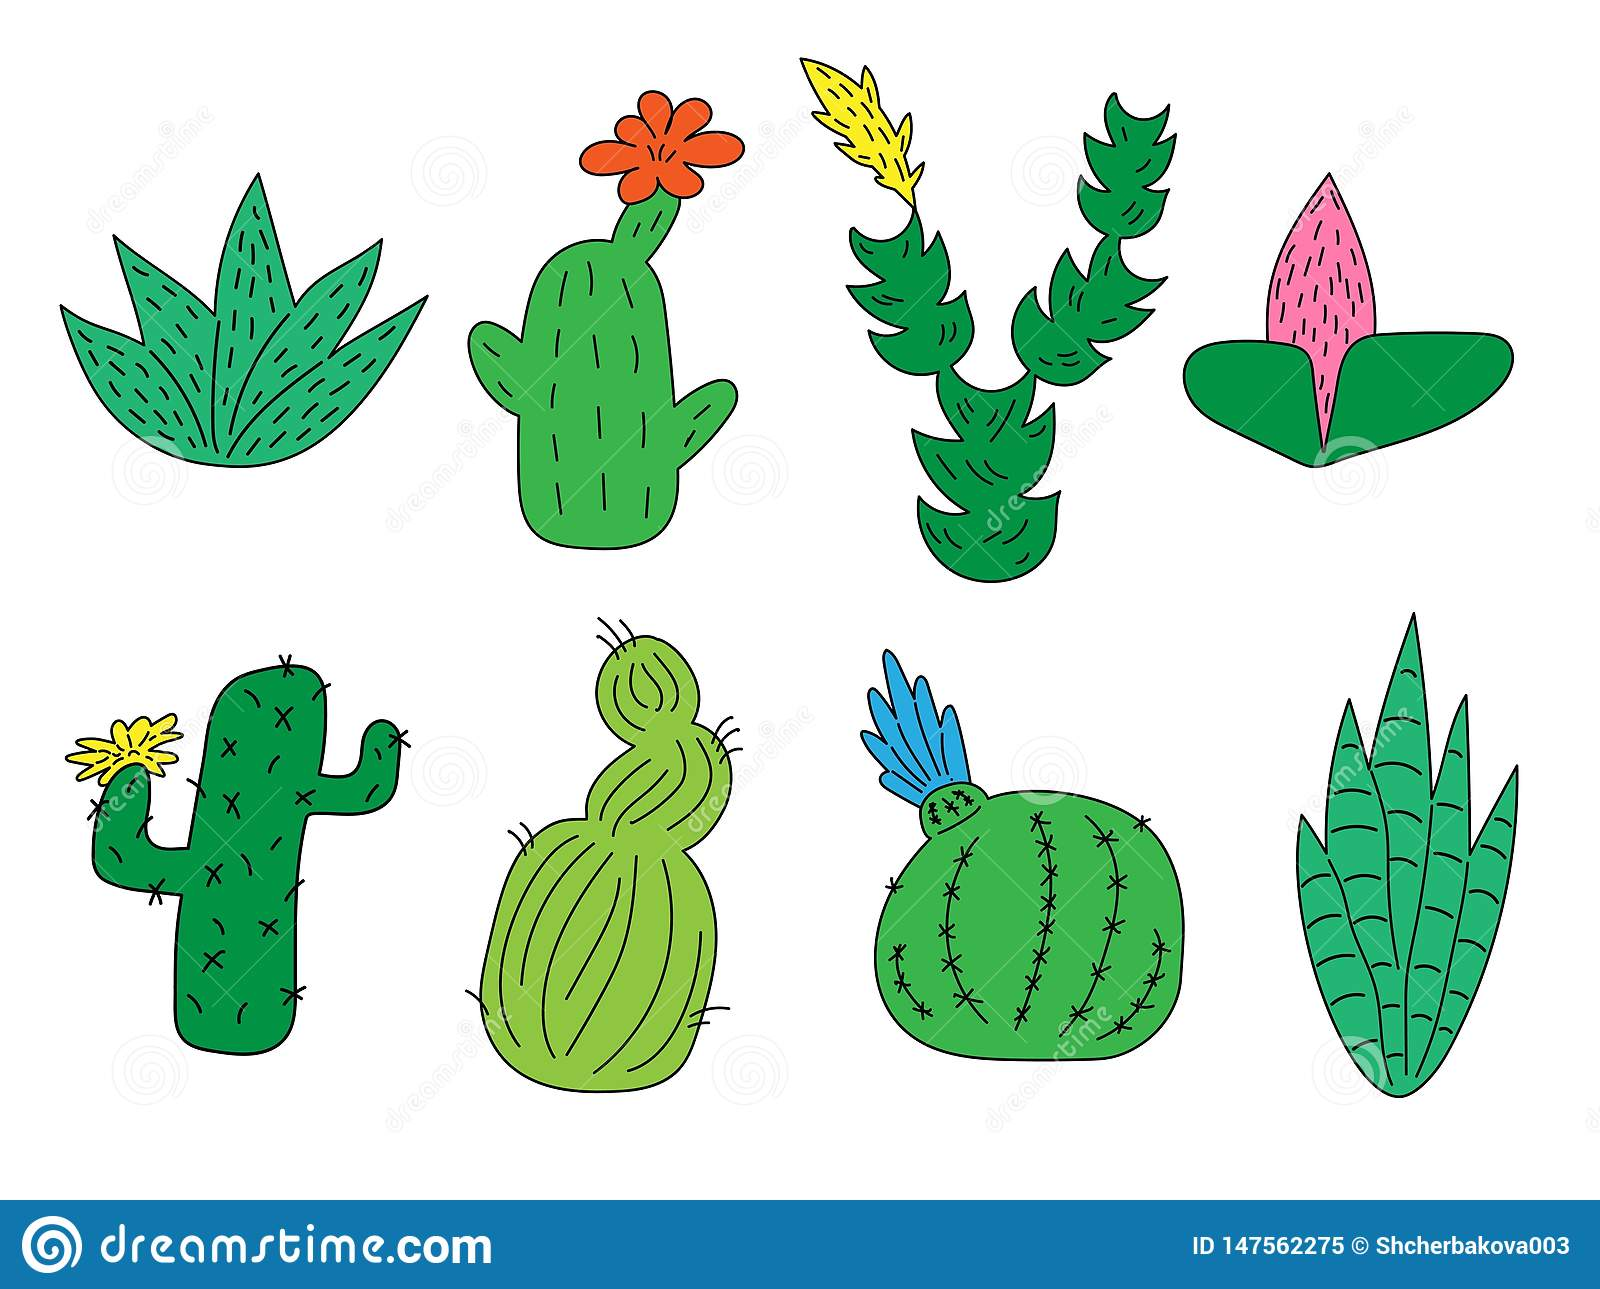 Set of hand drawn cute funny cacti and succulents. Isolated objects on white background. for icons, emoticons, stickers.